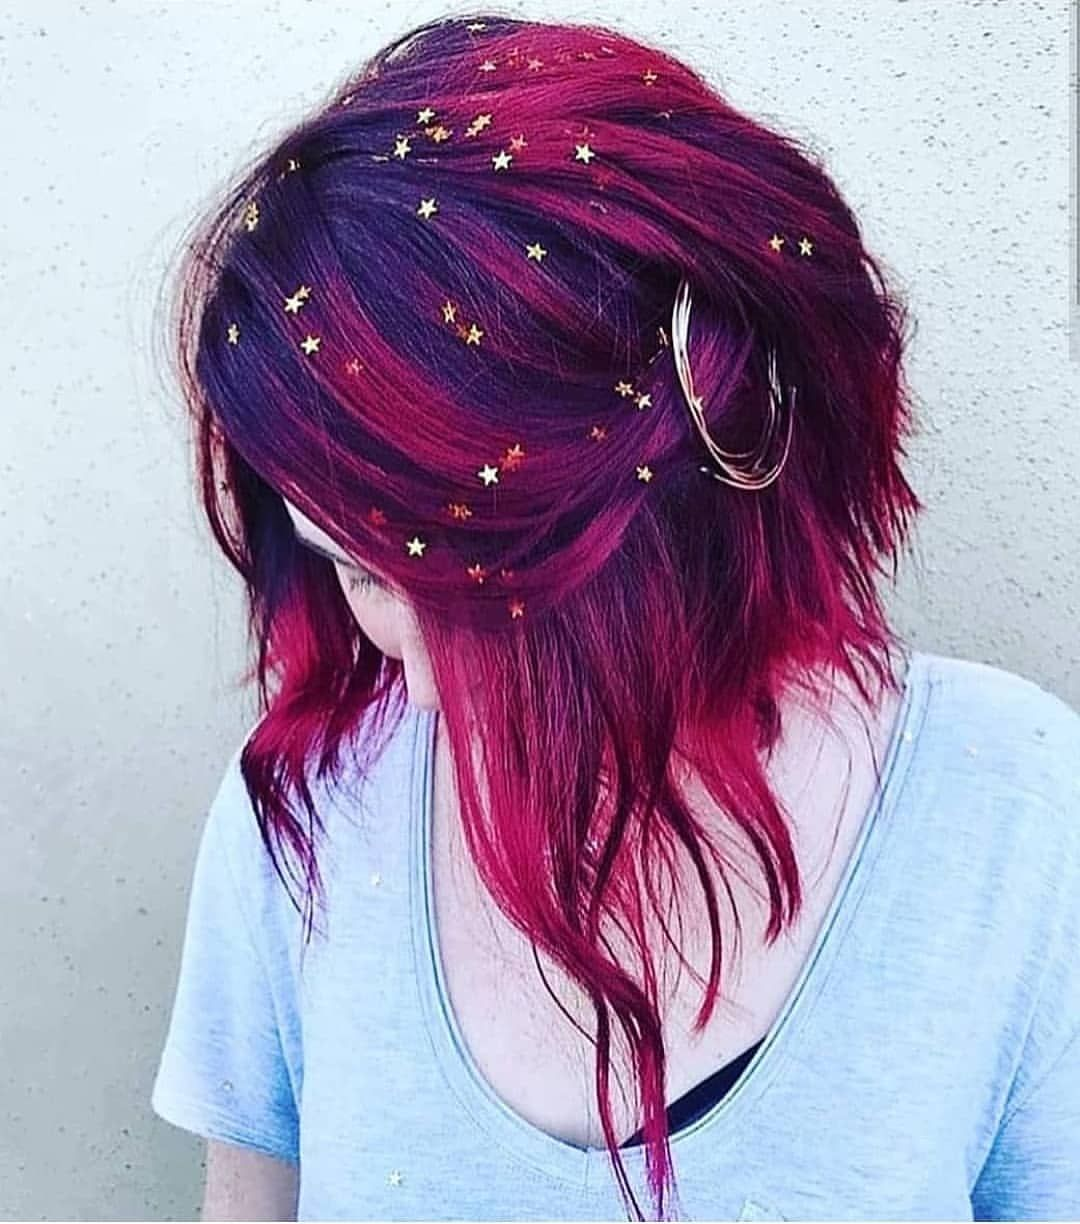 Ph Hairinspo With Images Hair Styles Dyed Hair Crazy Hair